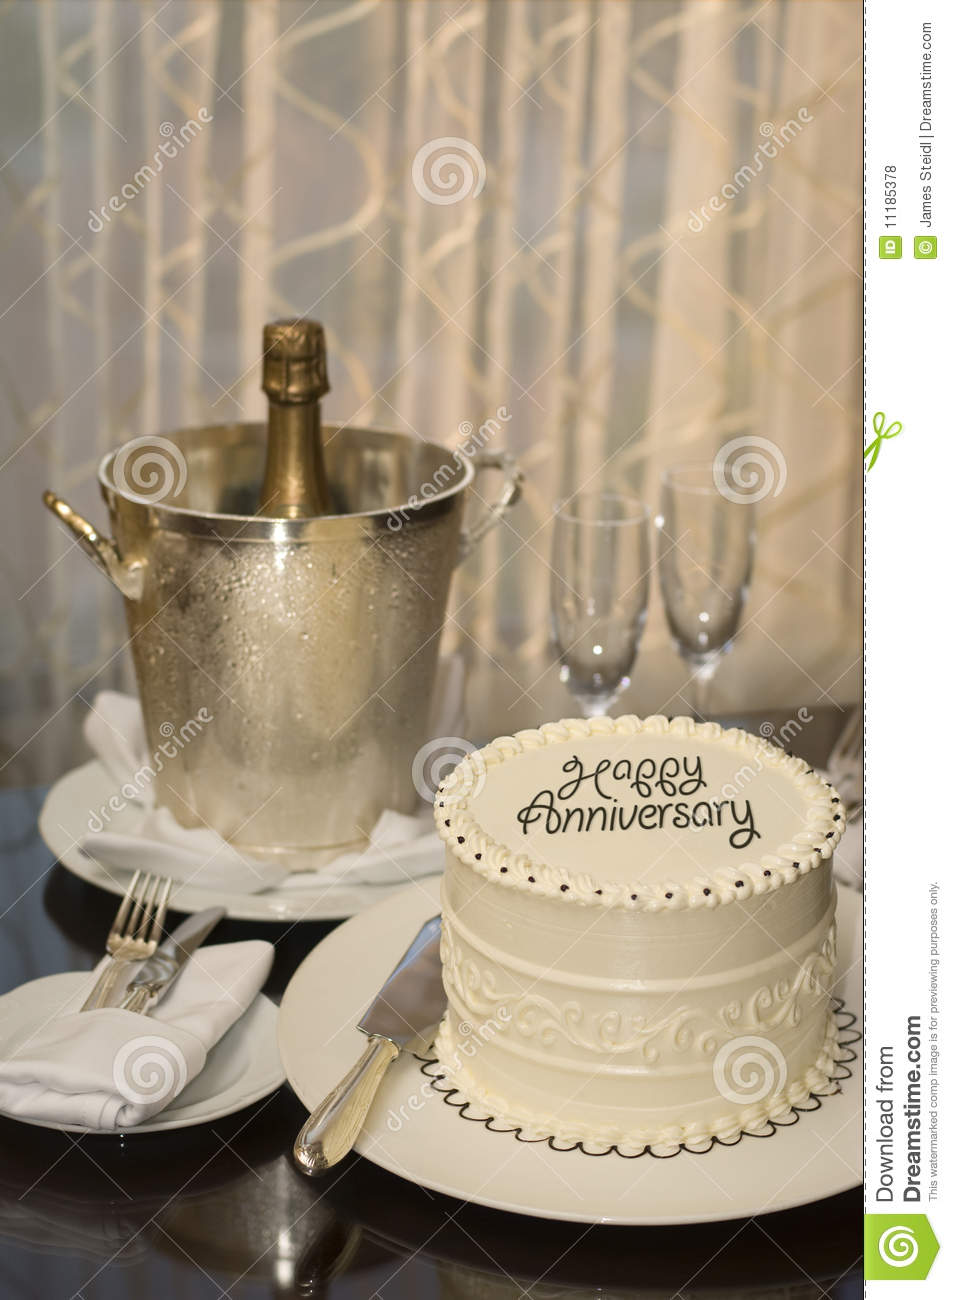 Happy Anniversary Royalty Free Stock Photos Image 11185378